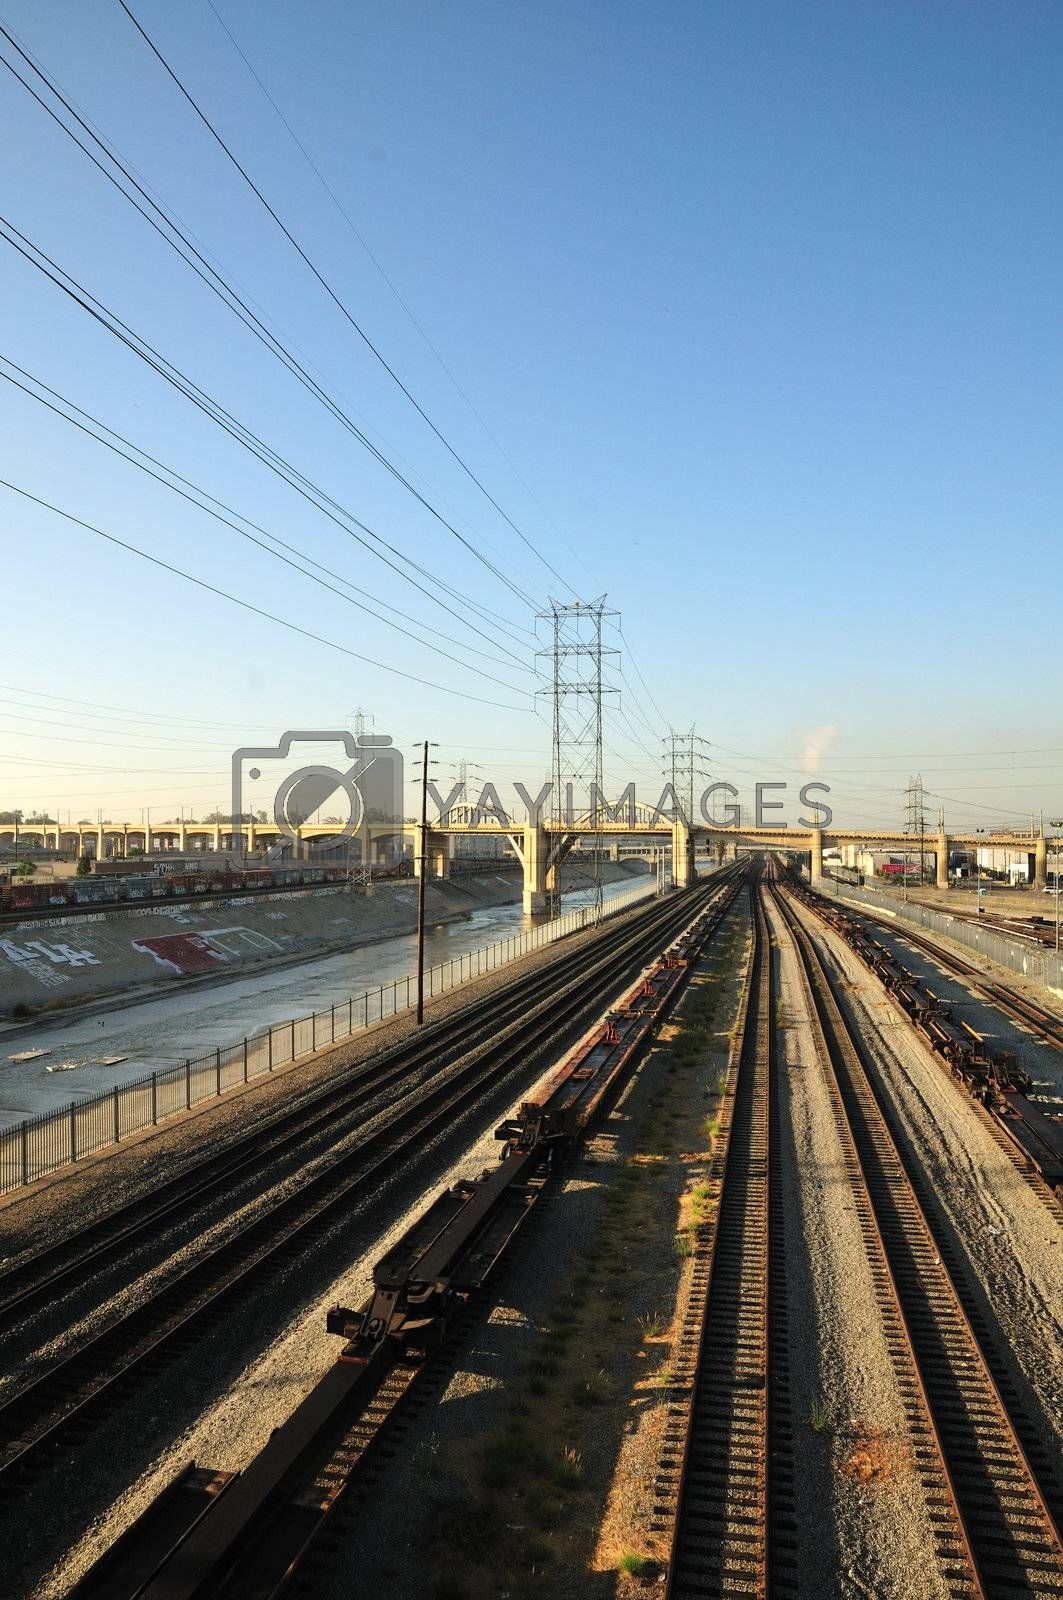 Railroad tracks and power lines converge next to the Los Angeles River in the early morning.  An arching bridge cuts between the industrial smog and the urban graffiti.